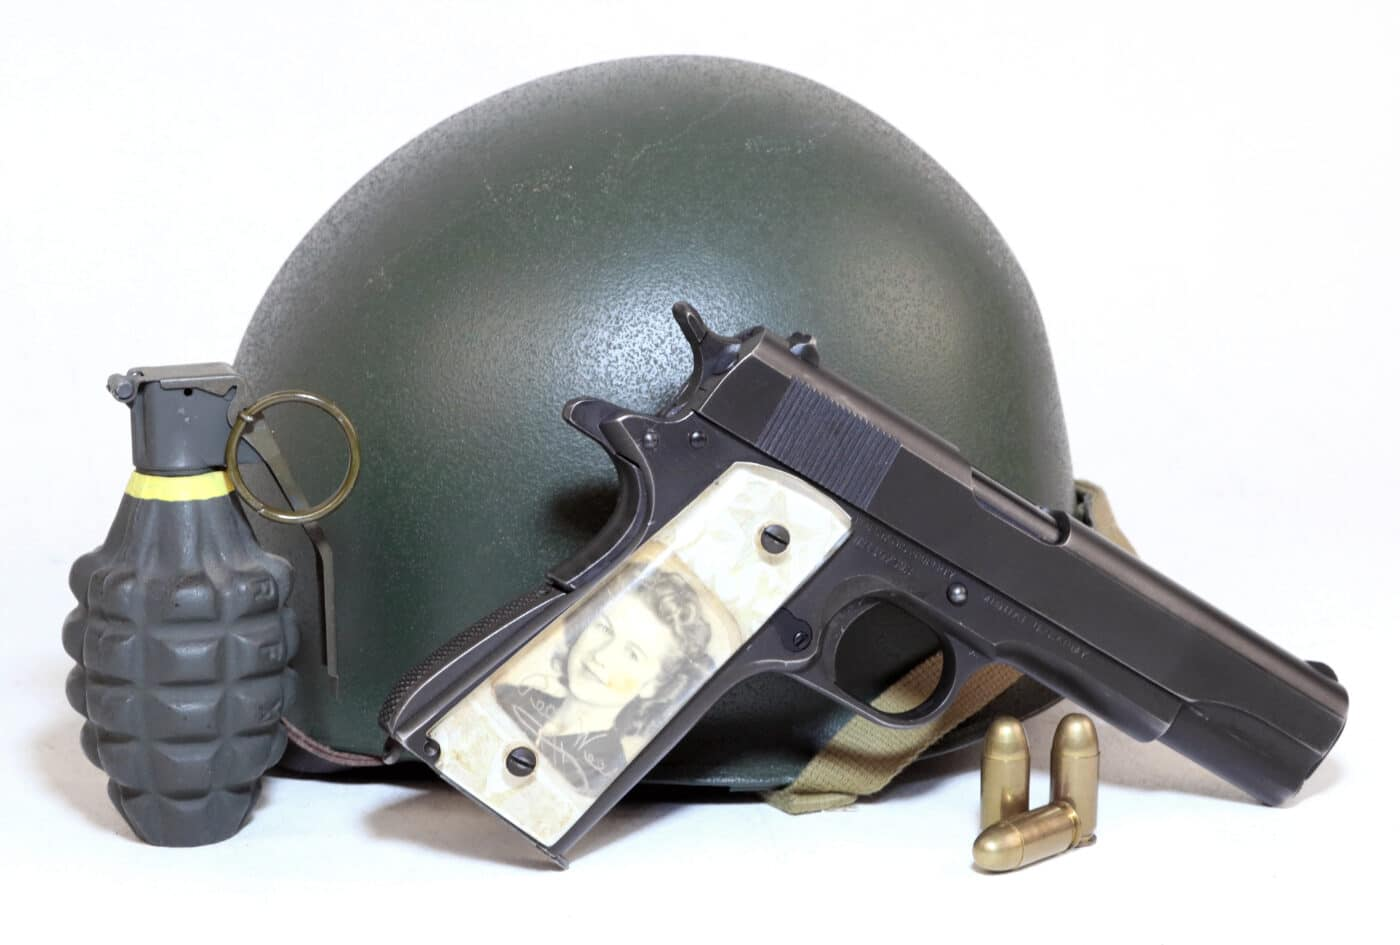 Vintage WWII sweetheart grips on 1911 with grenade, helmet, and ammo